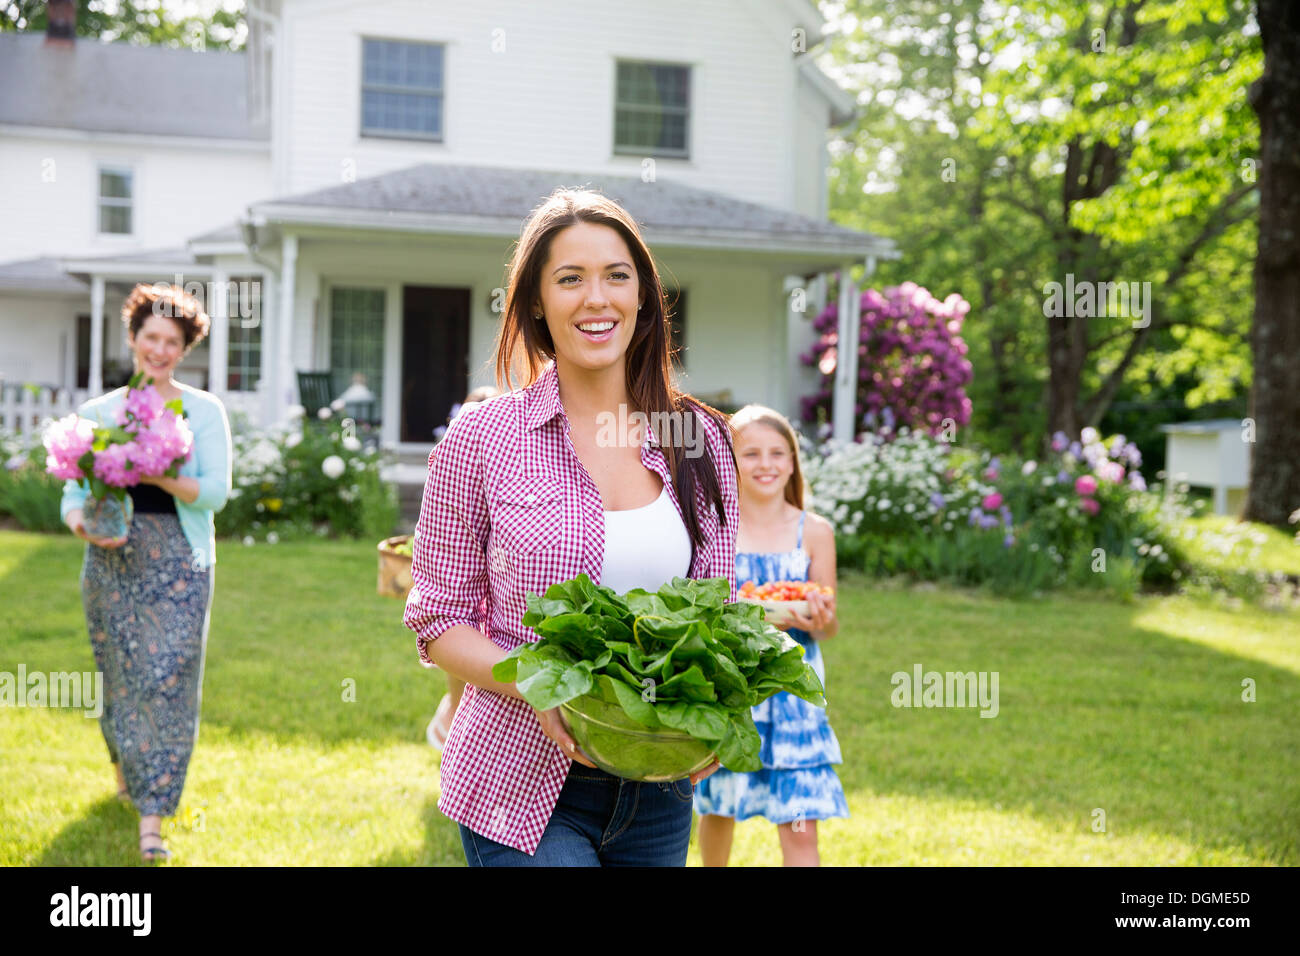 Family party. Parents and children carrying flowers, fresh picked vegetables and fruits. Preparing for a party. Stock Photo